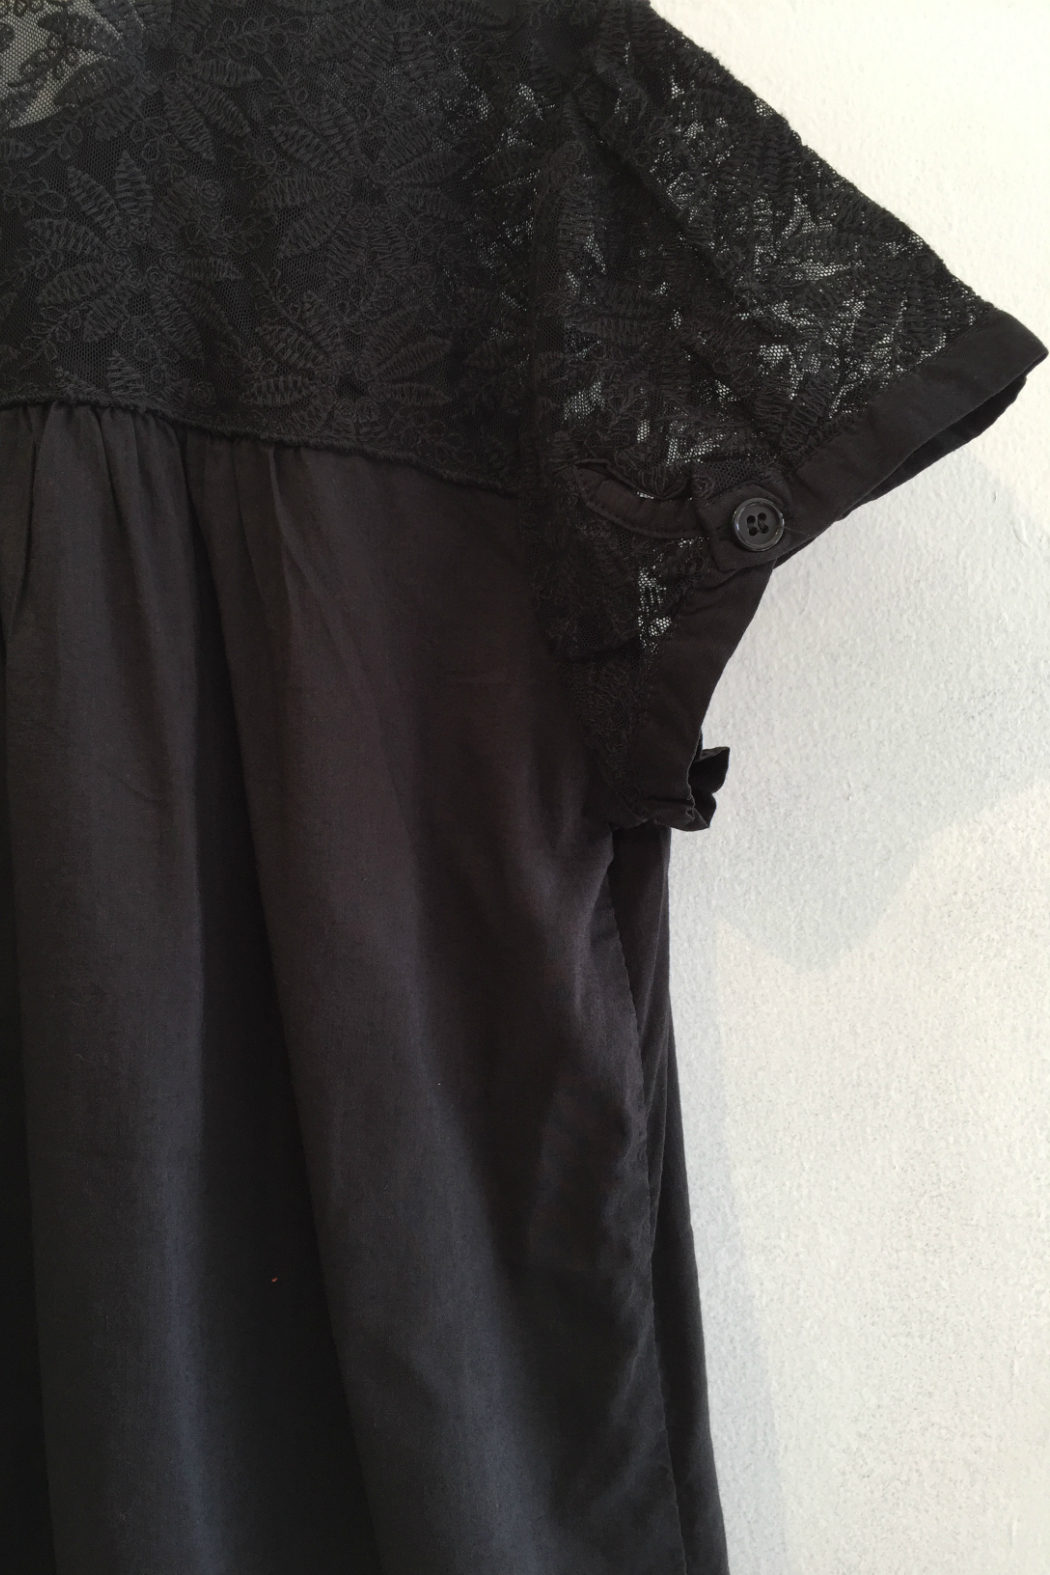 teri02-black-lace